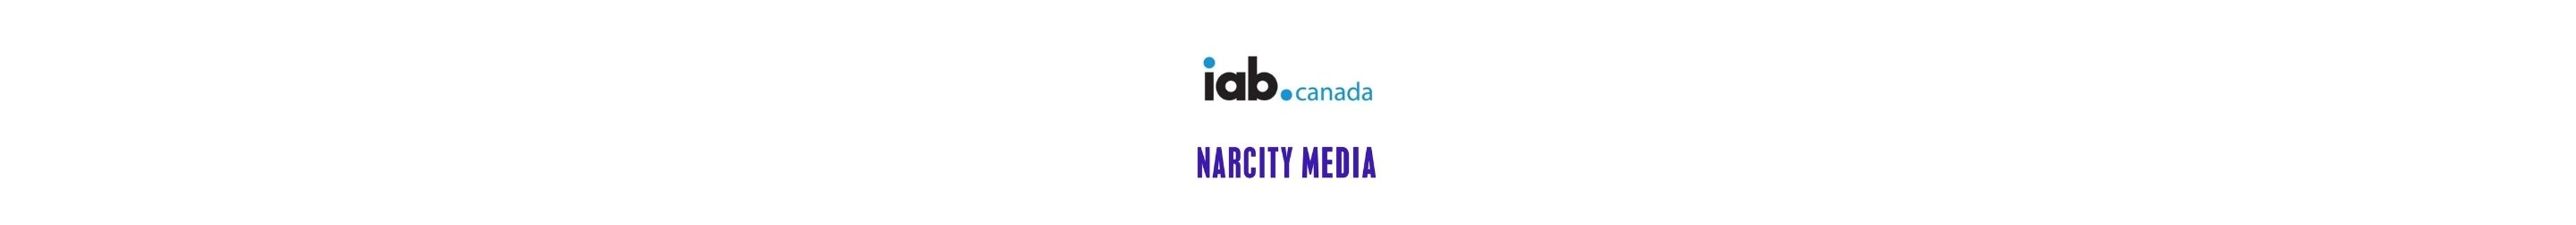 Narcity Media Is Now A Member Of The IAB Canada